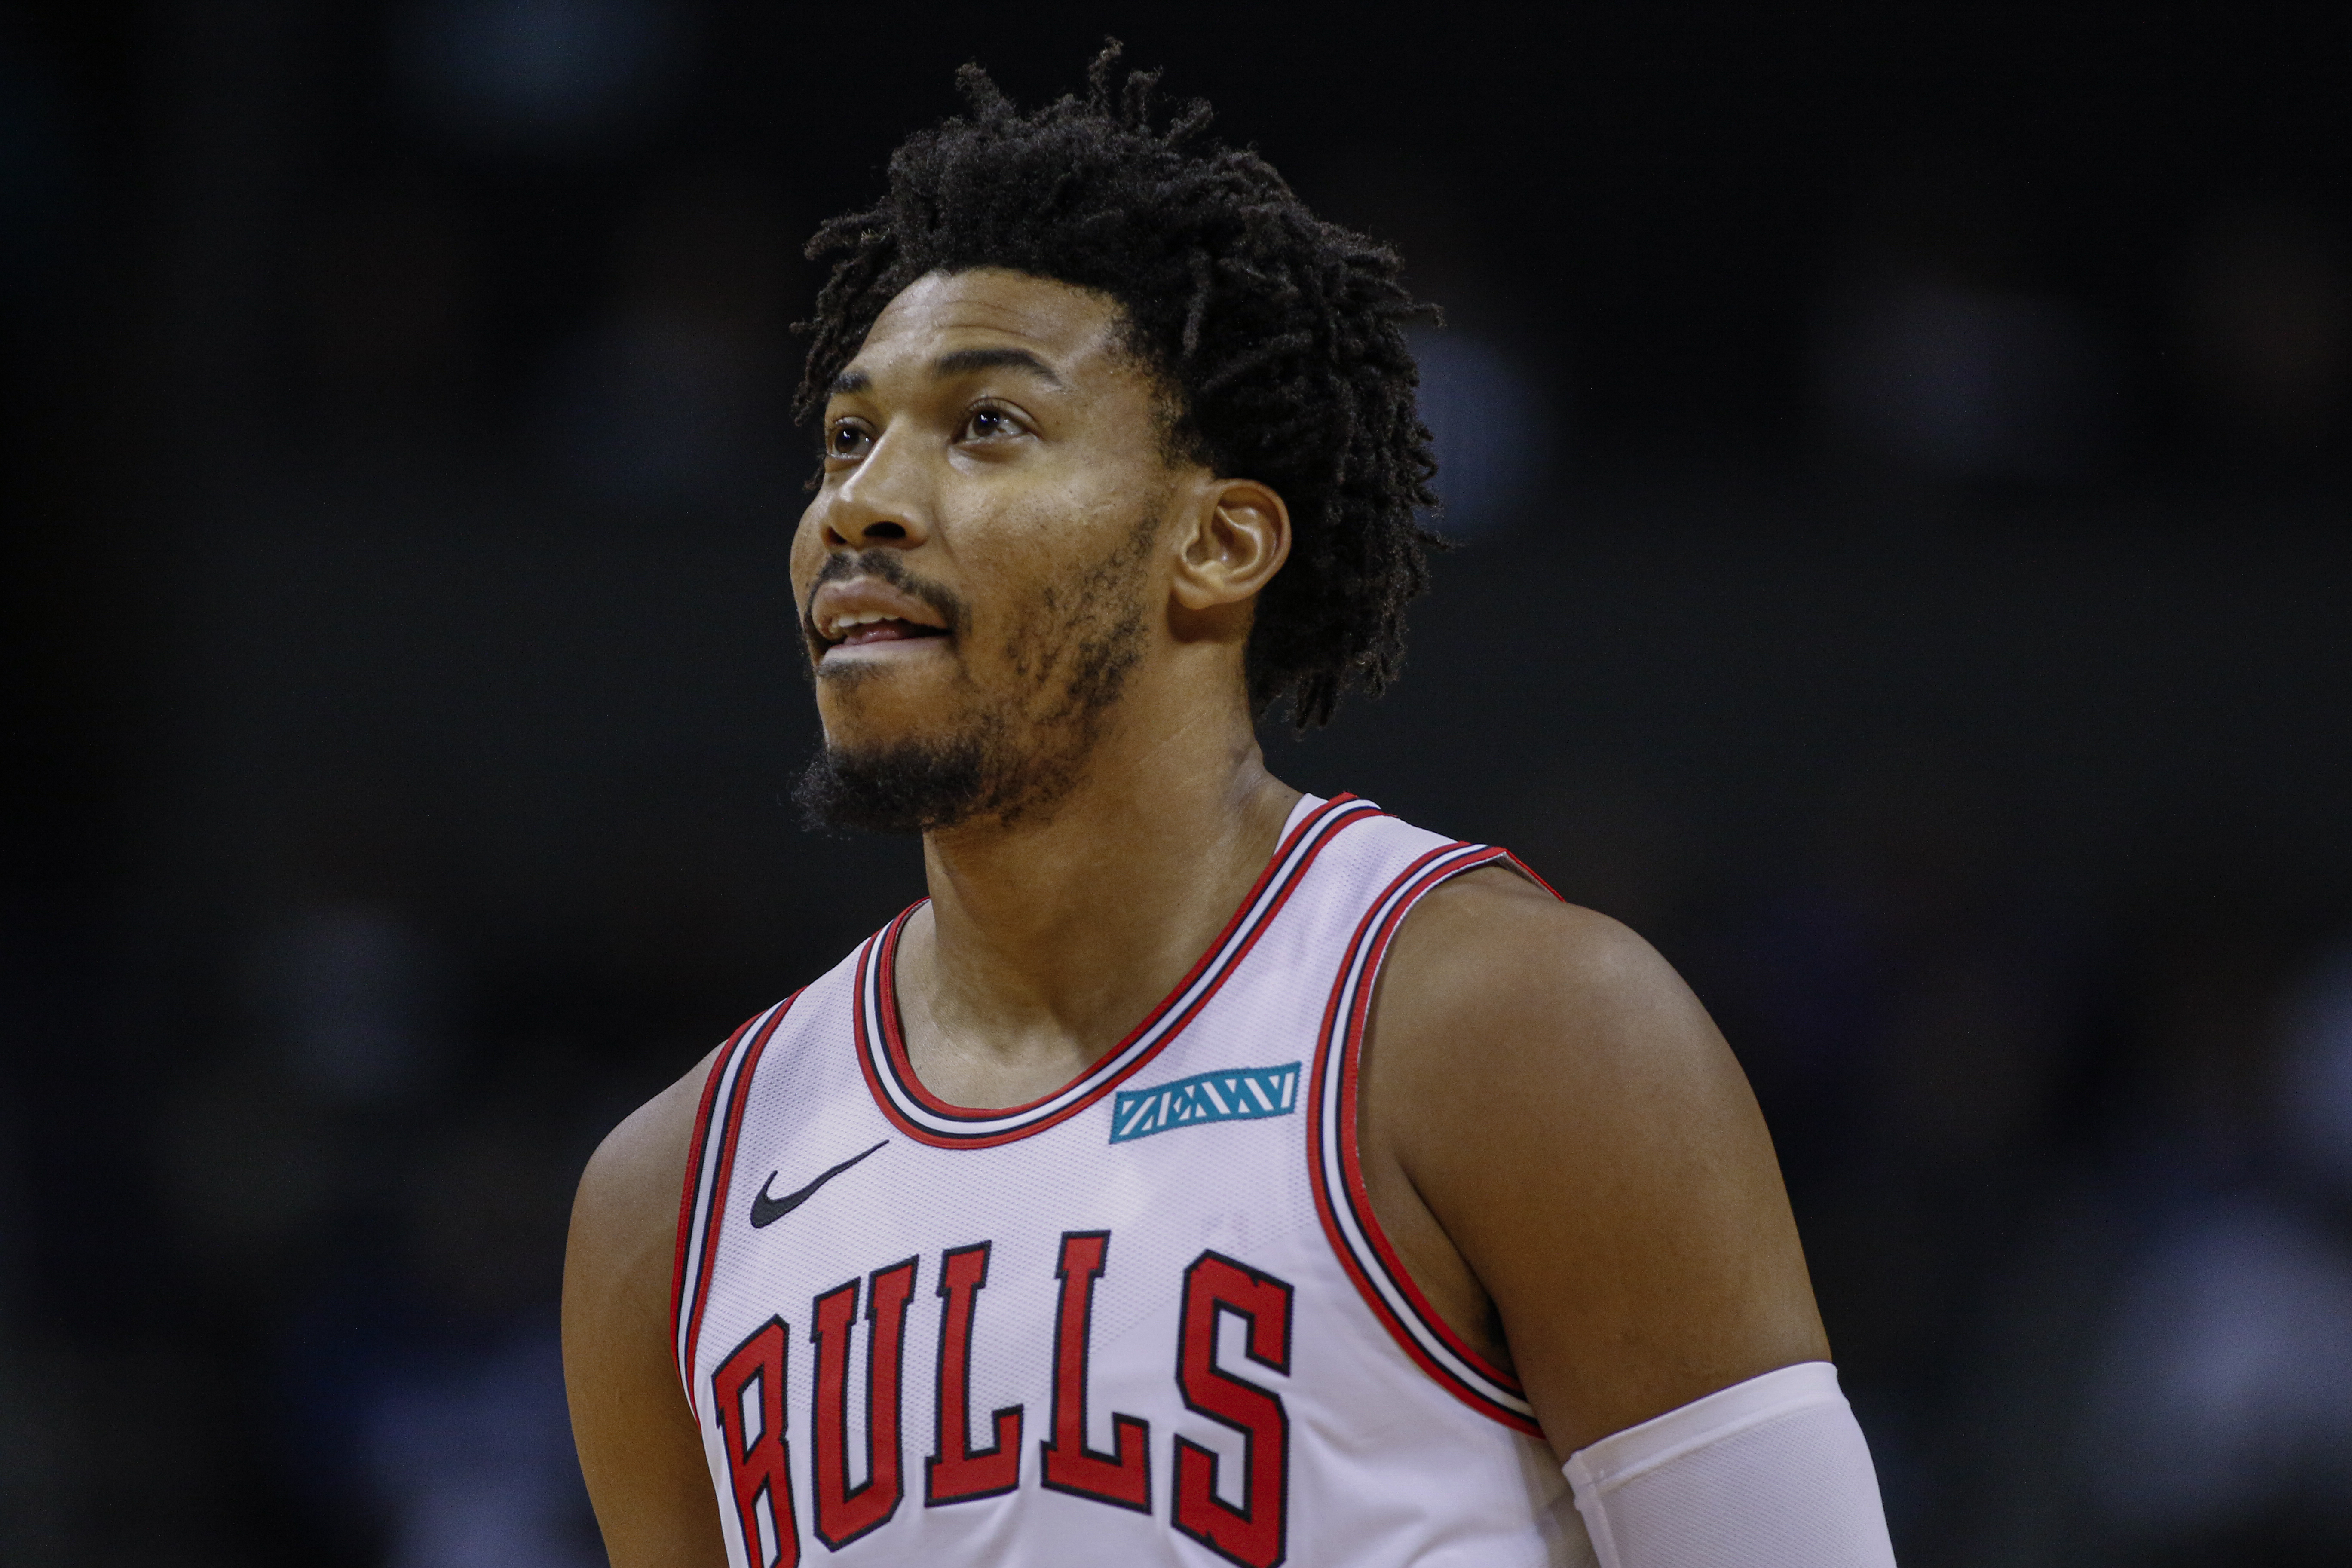 The Bulls are not sure when Otto Porter Jr. might return.